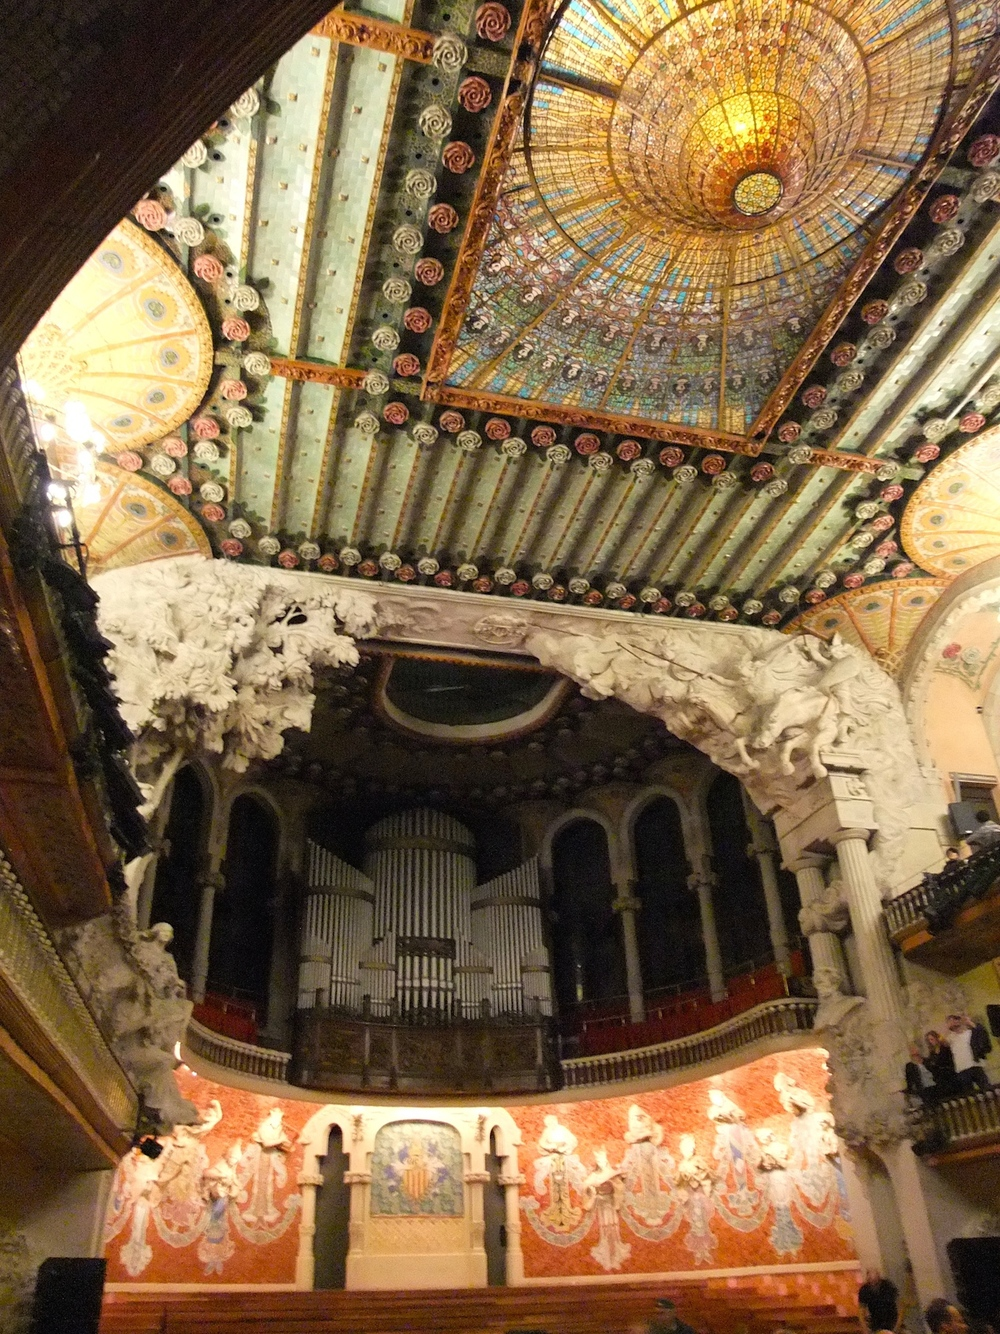 The stunning ceiling inside the Palau de la Música